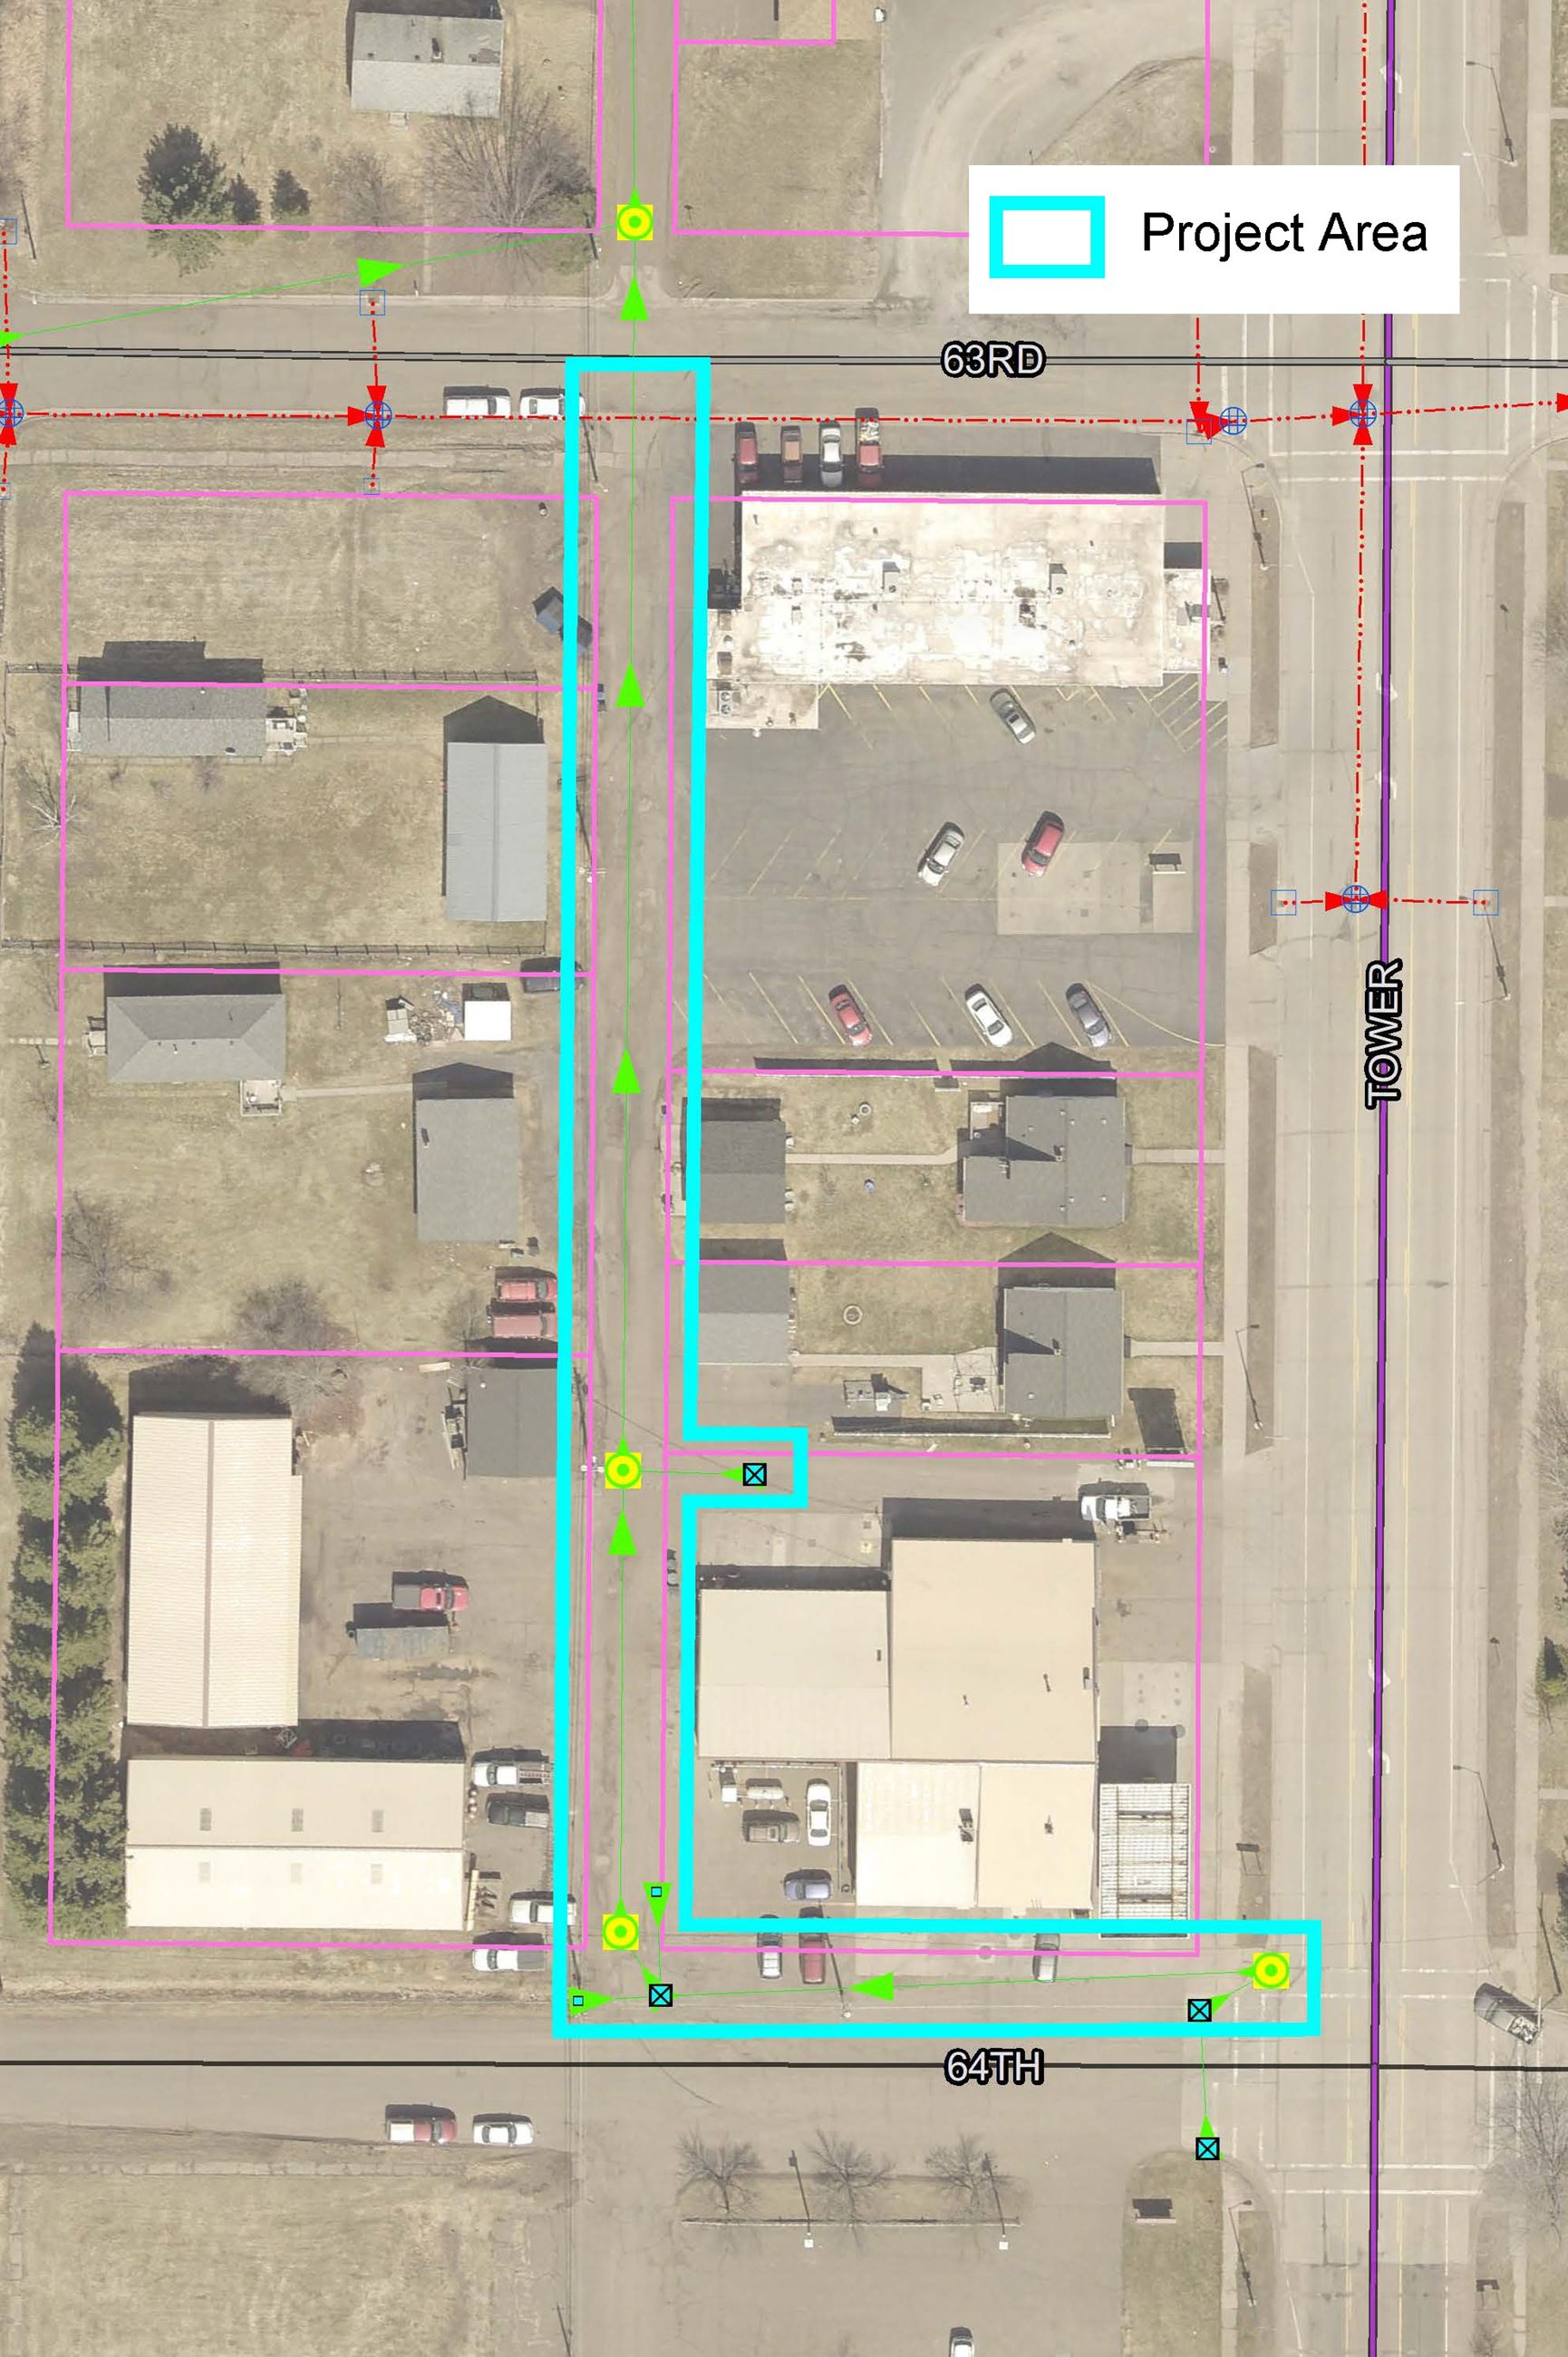 Satellite photo of project area on North 64th Street